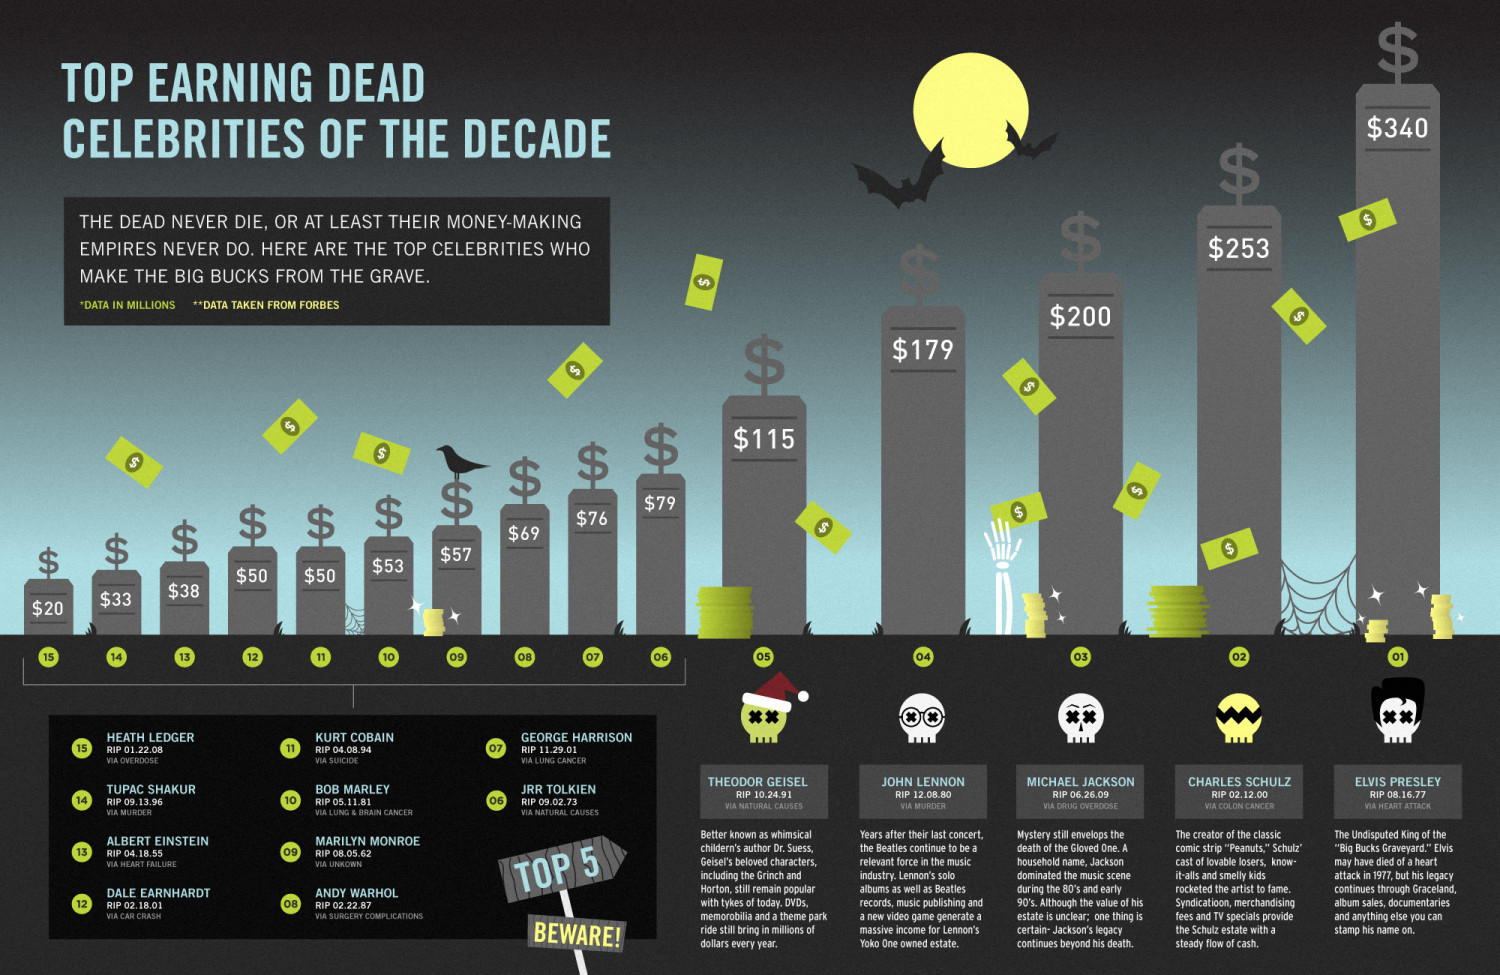 Top Earning Dead Celebrities of the Decade Infographic